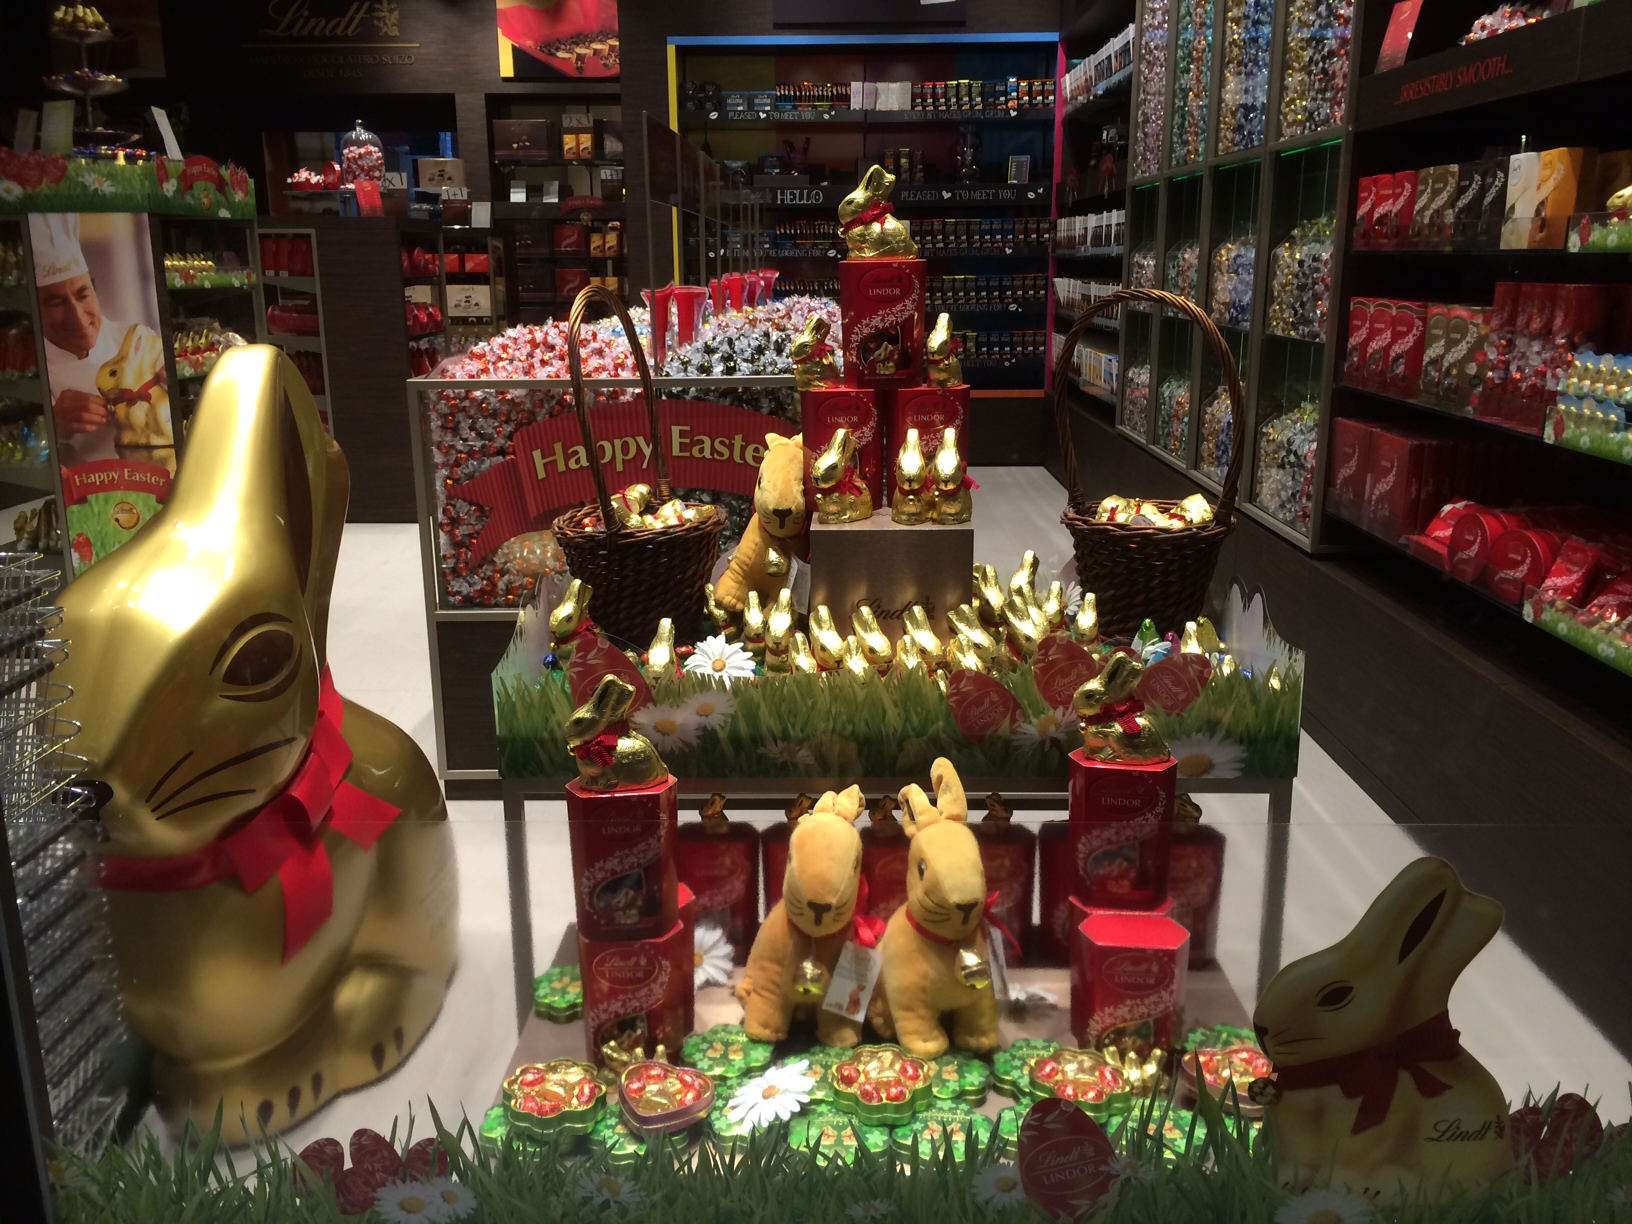 Happy Lindt Easter!!